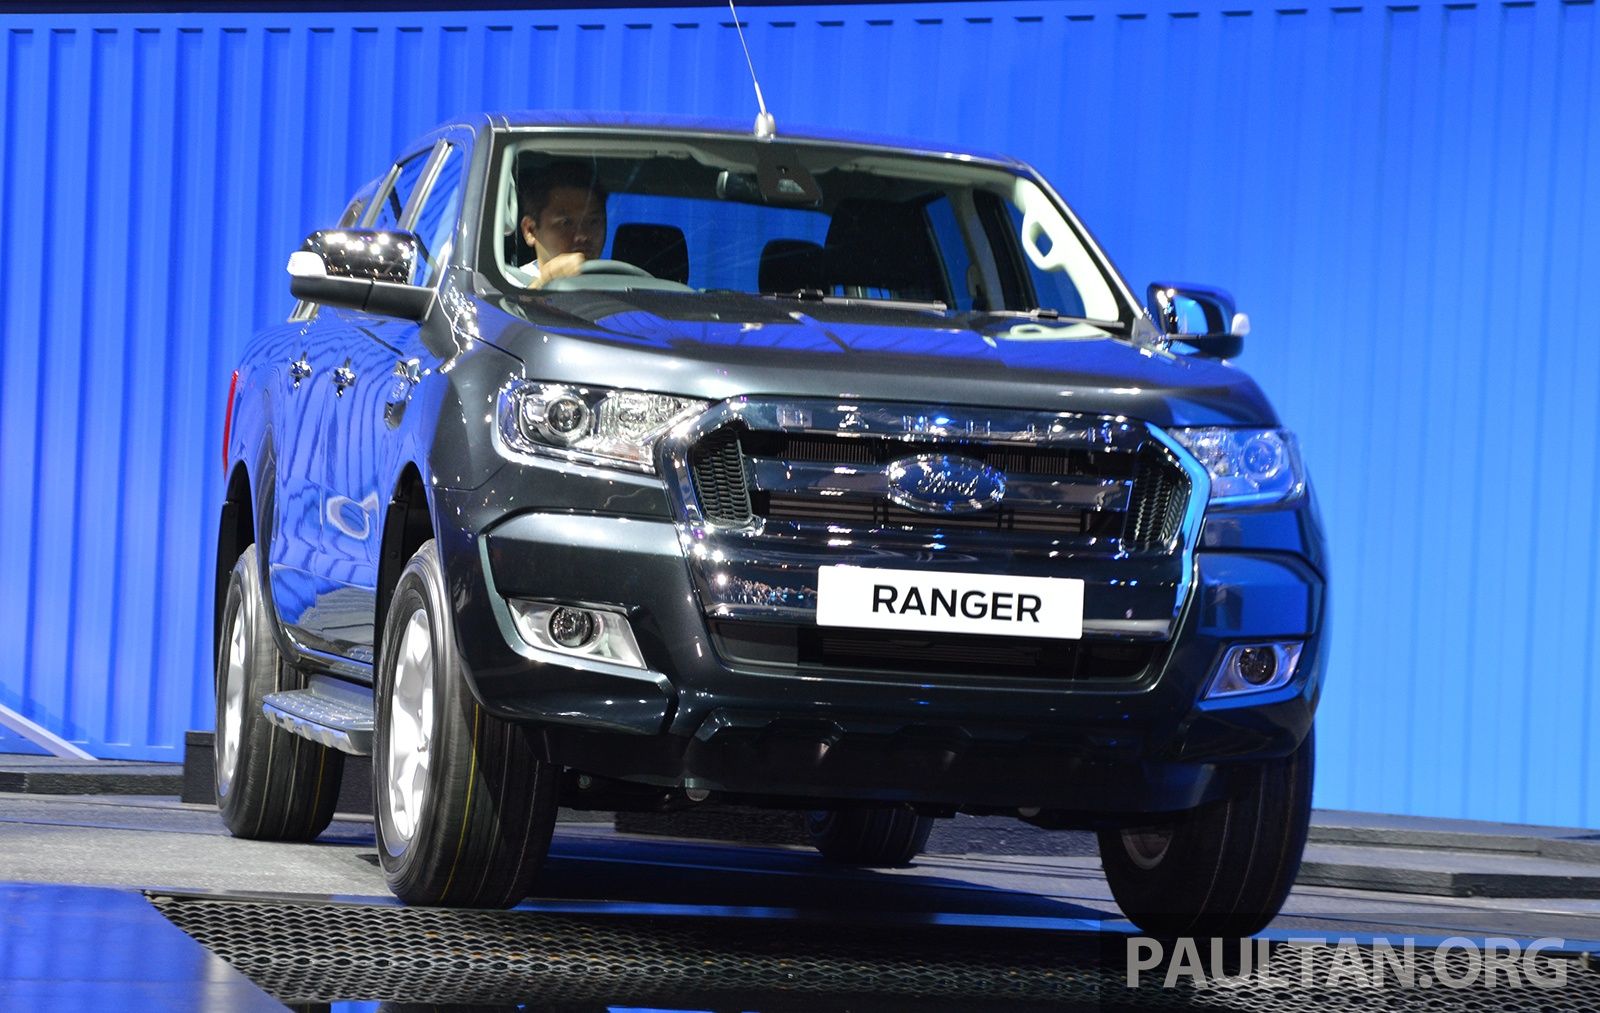 2015 Ford Ranger makes world debut in Thailand Image 320424